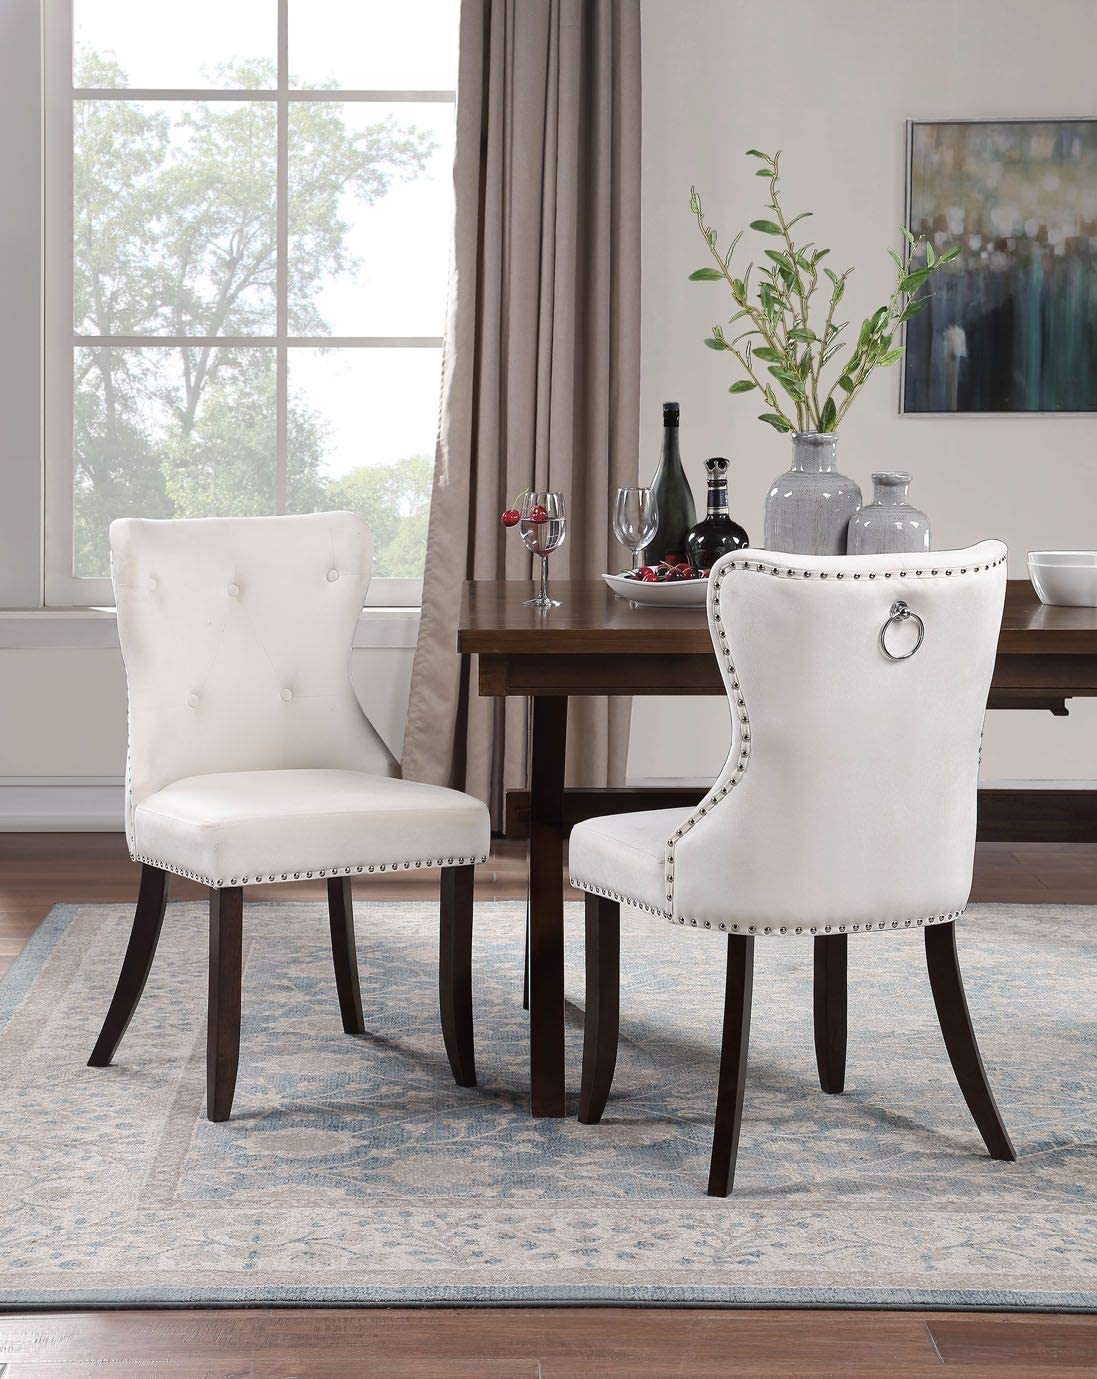 Merax Dining Chair Set of 2, Tufted Fabric Armless Chair Upholstered Accent Chair,Beige